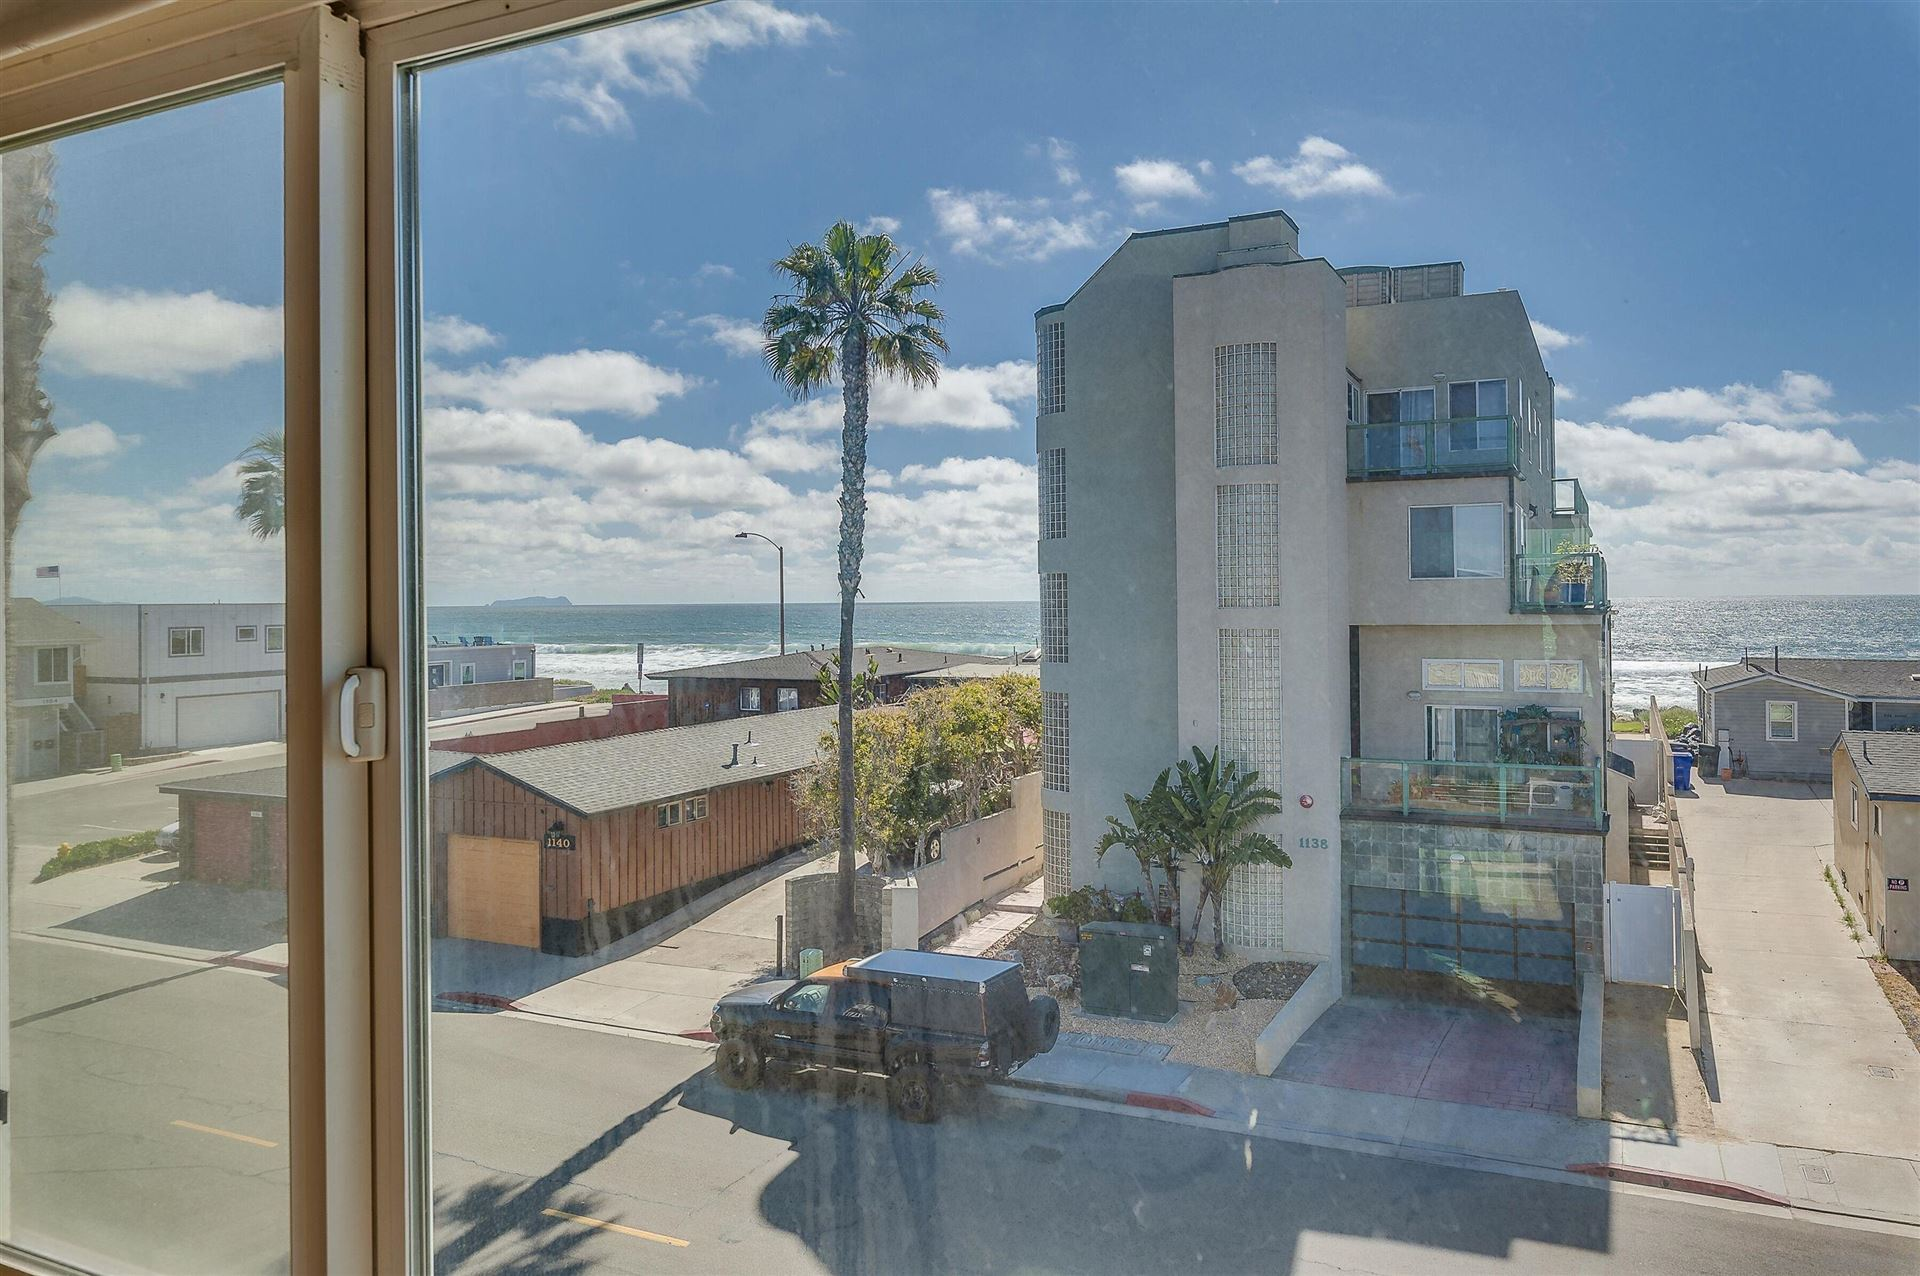 Photo of 1111 Seacoast Dr. #20, Imperial Beach, CA 91932 (MLS # 210026611)